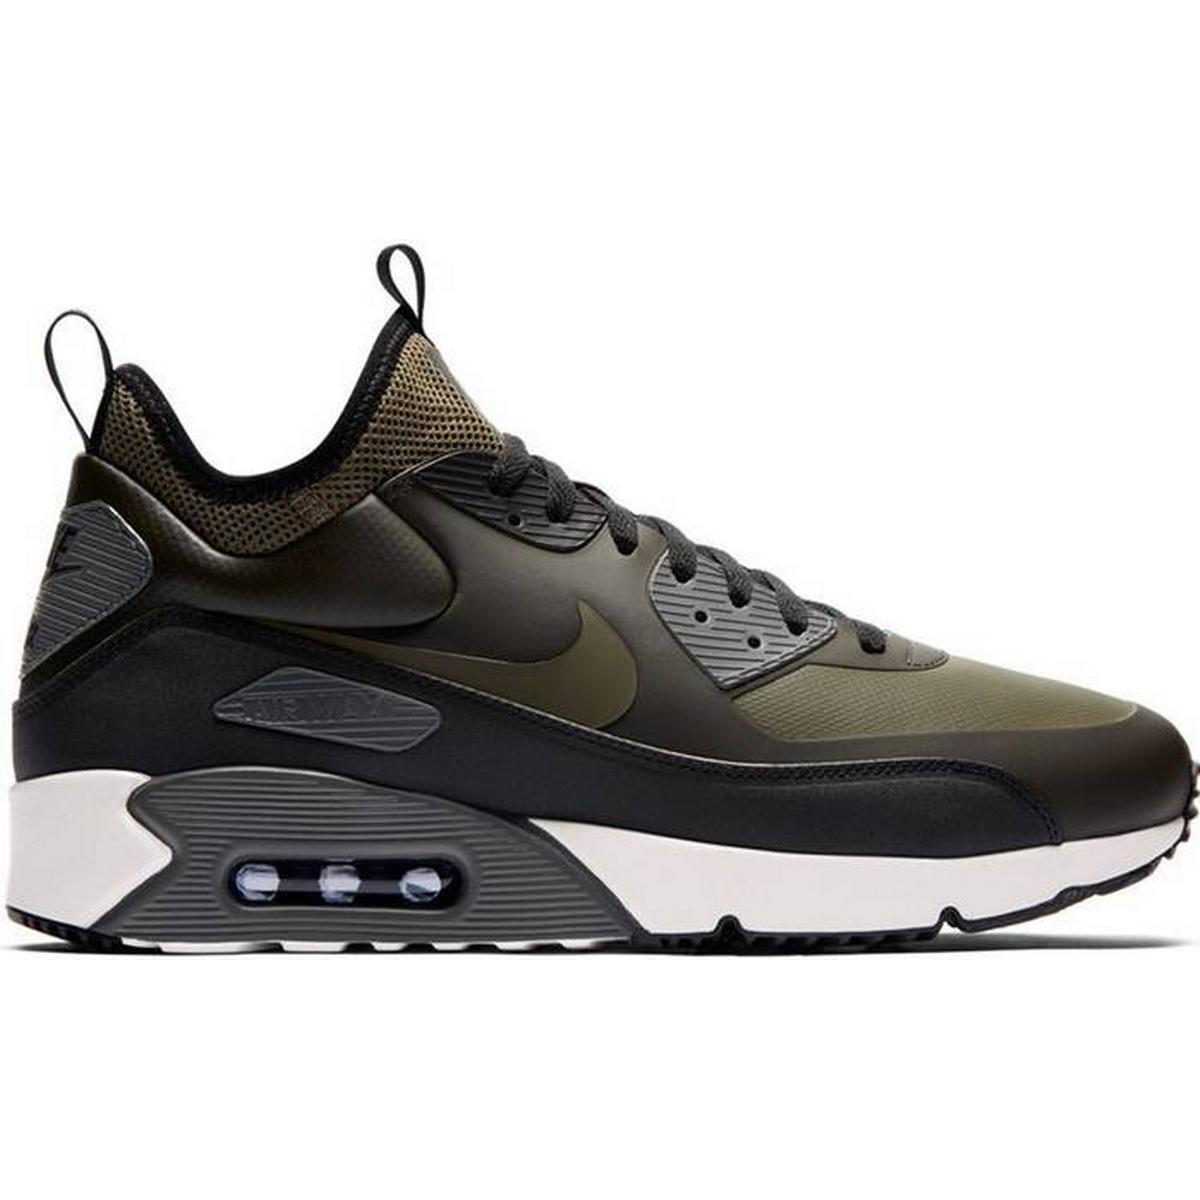 Nike Air Max 90 Ultra Mid Winter BlackGrey • Se priser (1